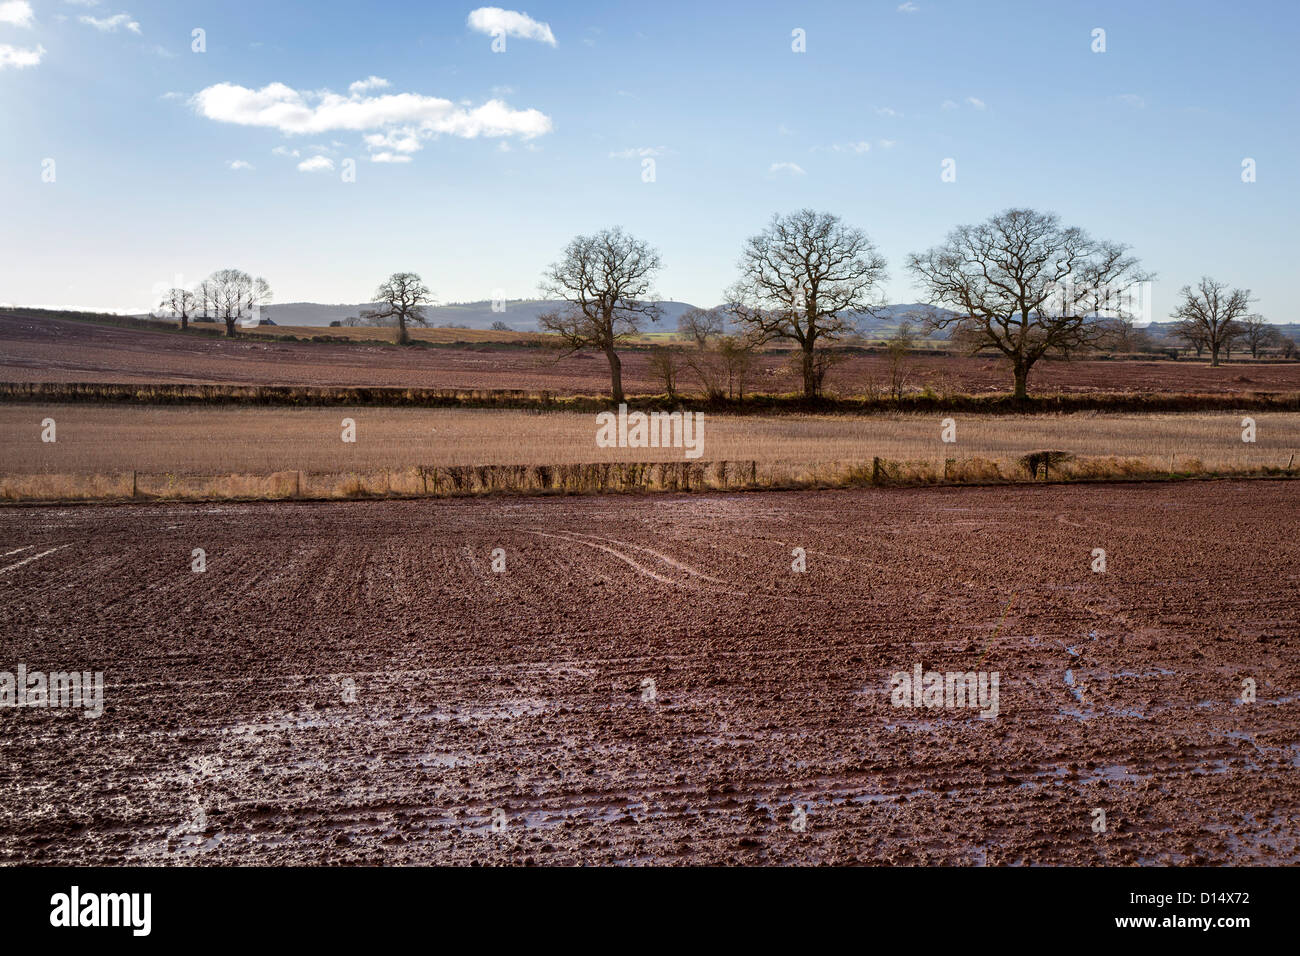 Bare winter fields and trees with waterlogged muddy ground, Hereford, UK Stock Photo